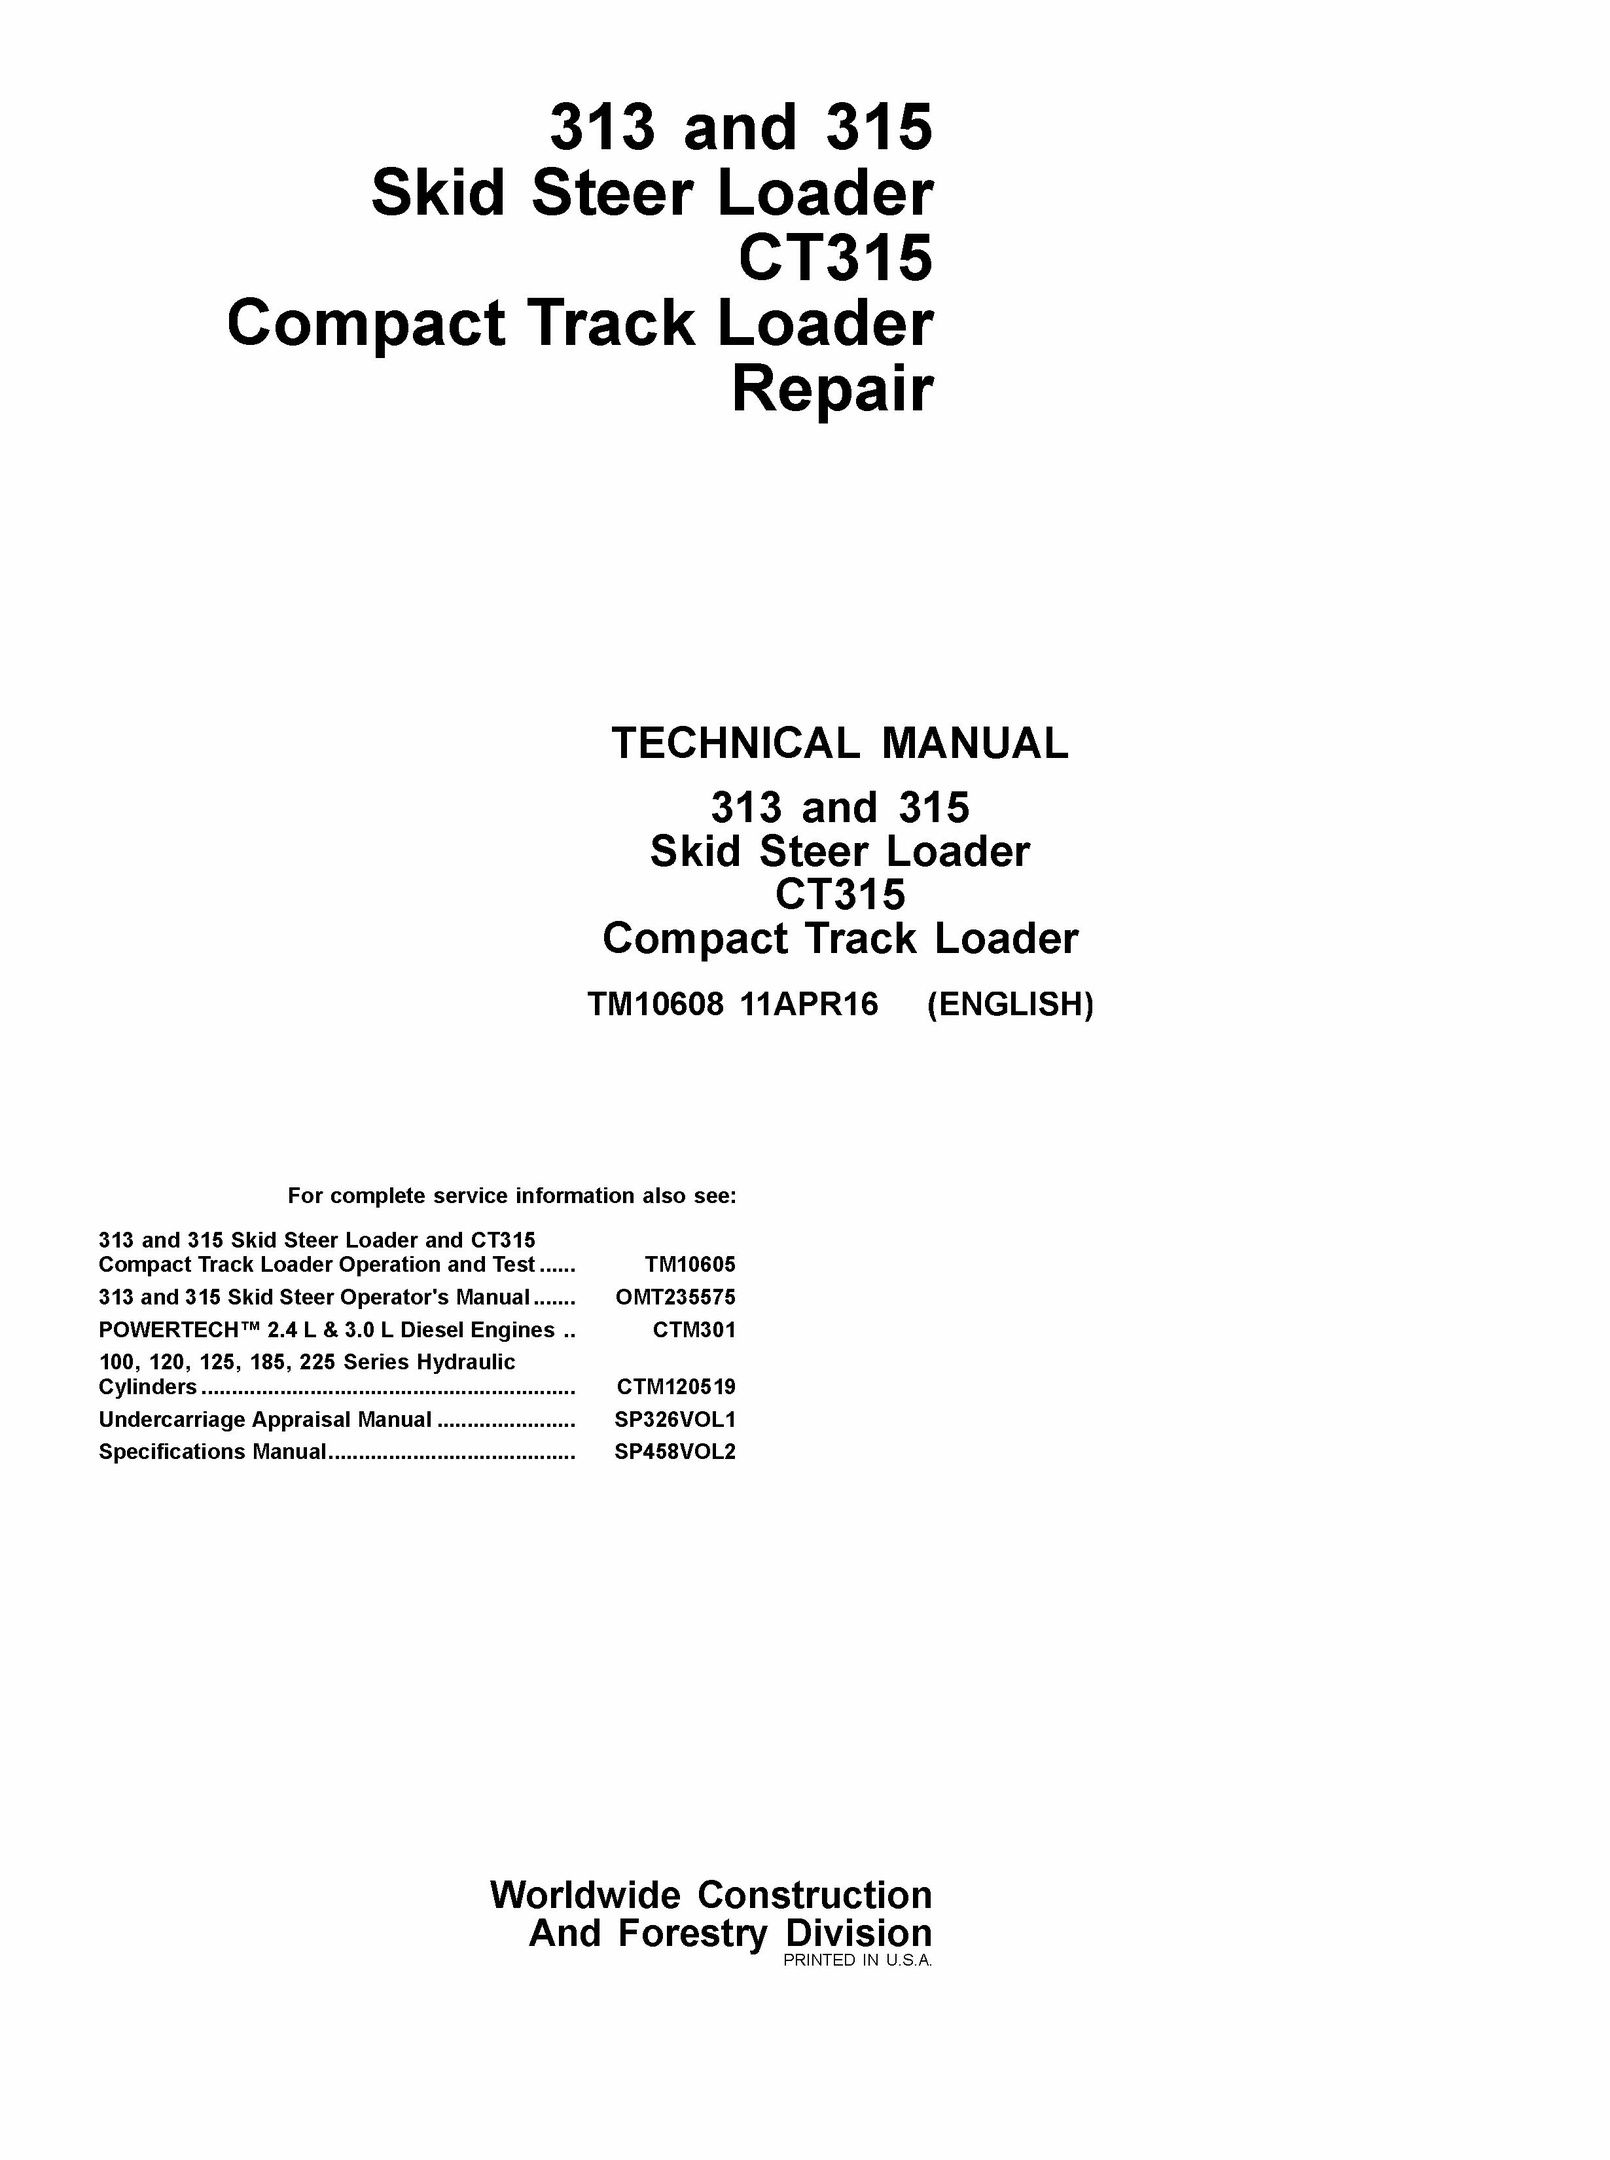 PDF JOHN DEERE 313 315 CT315 SKID STEER COMPACT TRACK LOADER REPAIR  TECHNICAL MANUAL TM10608